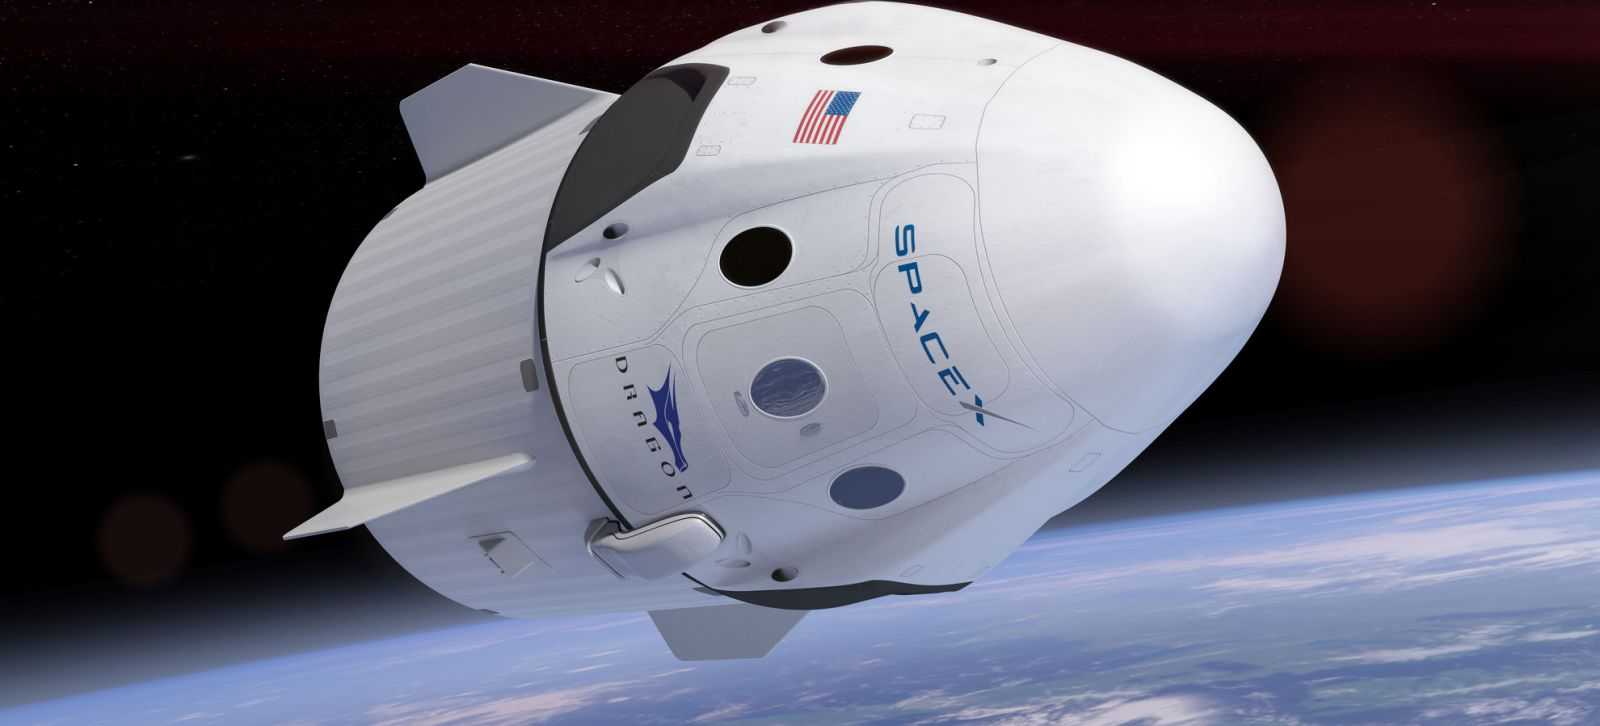 An artist's rendering of a Crew Dragon in orbit. Image Credit: SpaceX